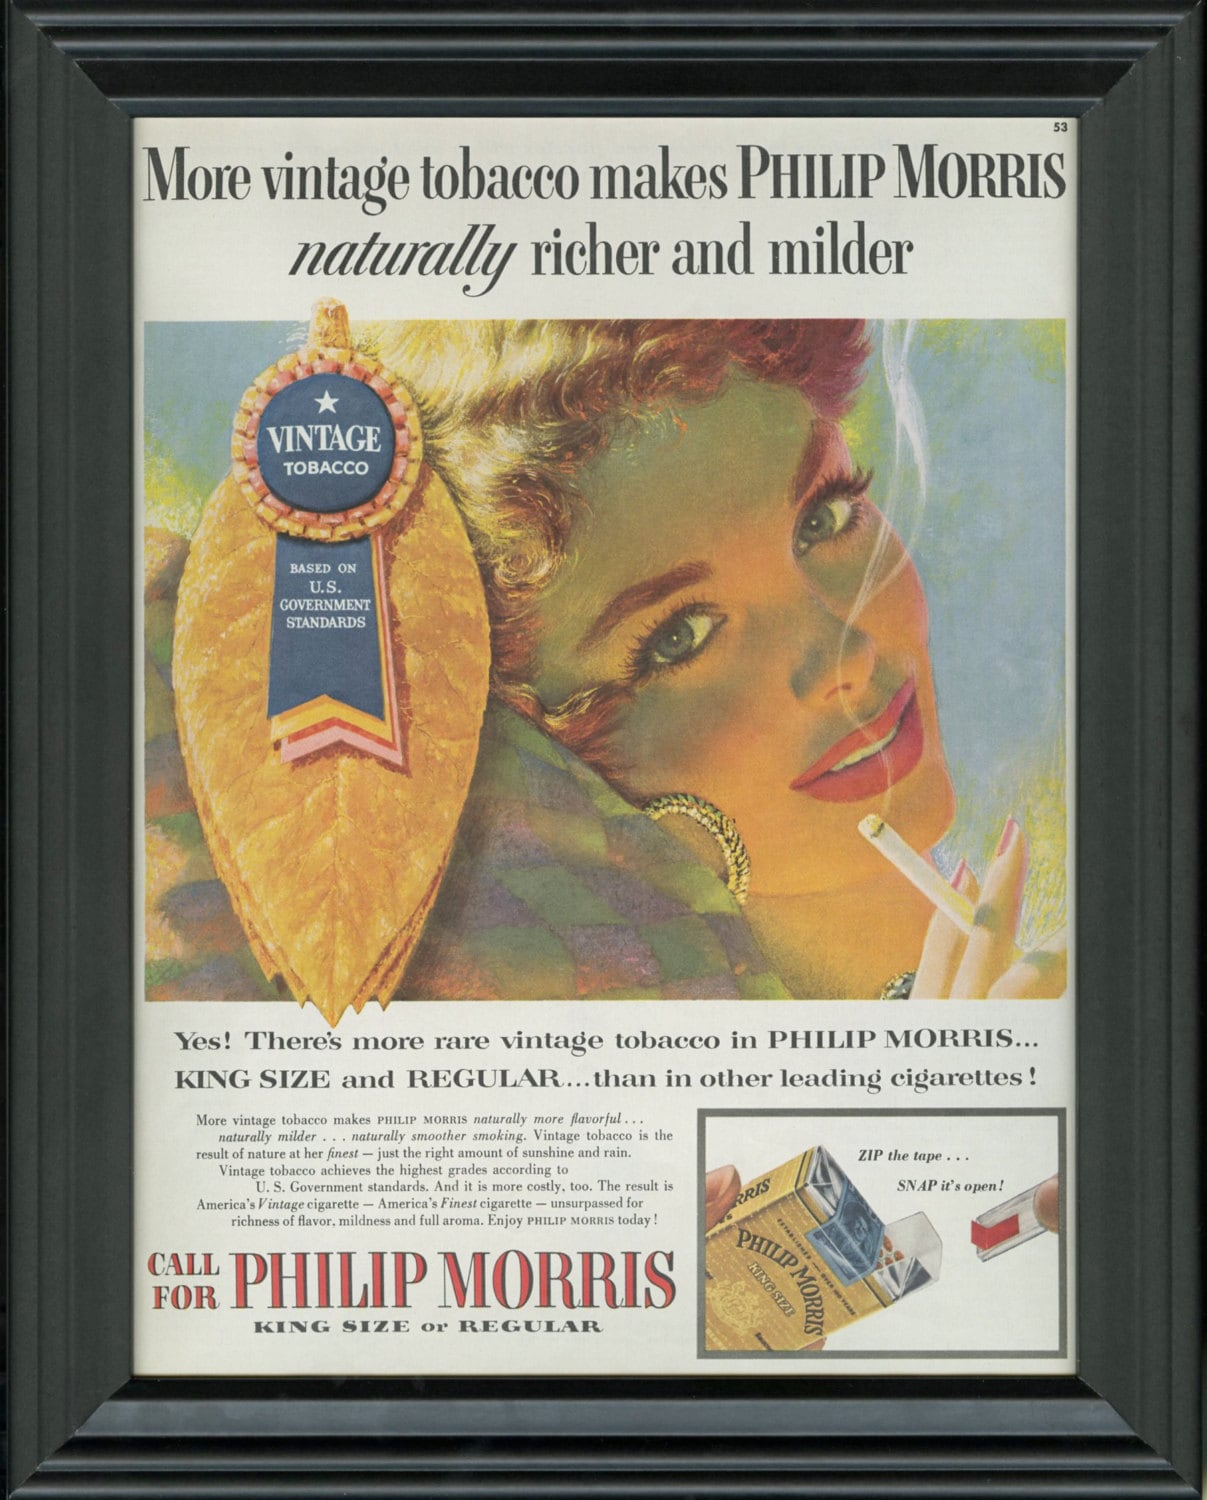 an analysis of the famous philip morris marlboro cigarette ad Public health experts say that tobacco advertising increases cigarette consumption and  with philip morris in  analysis of the.